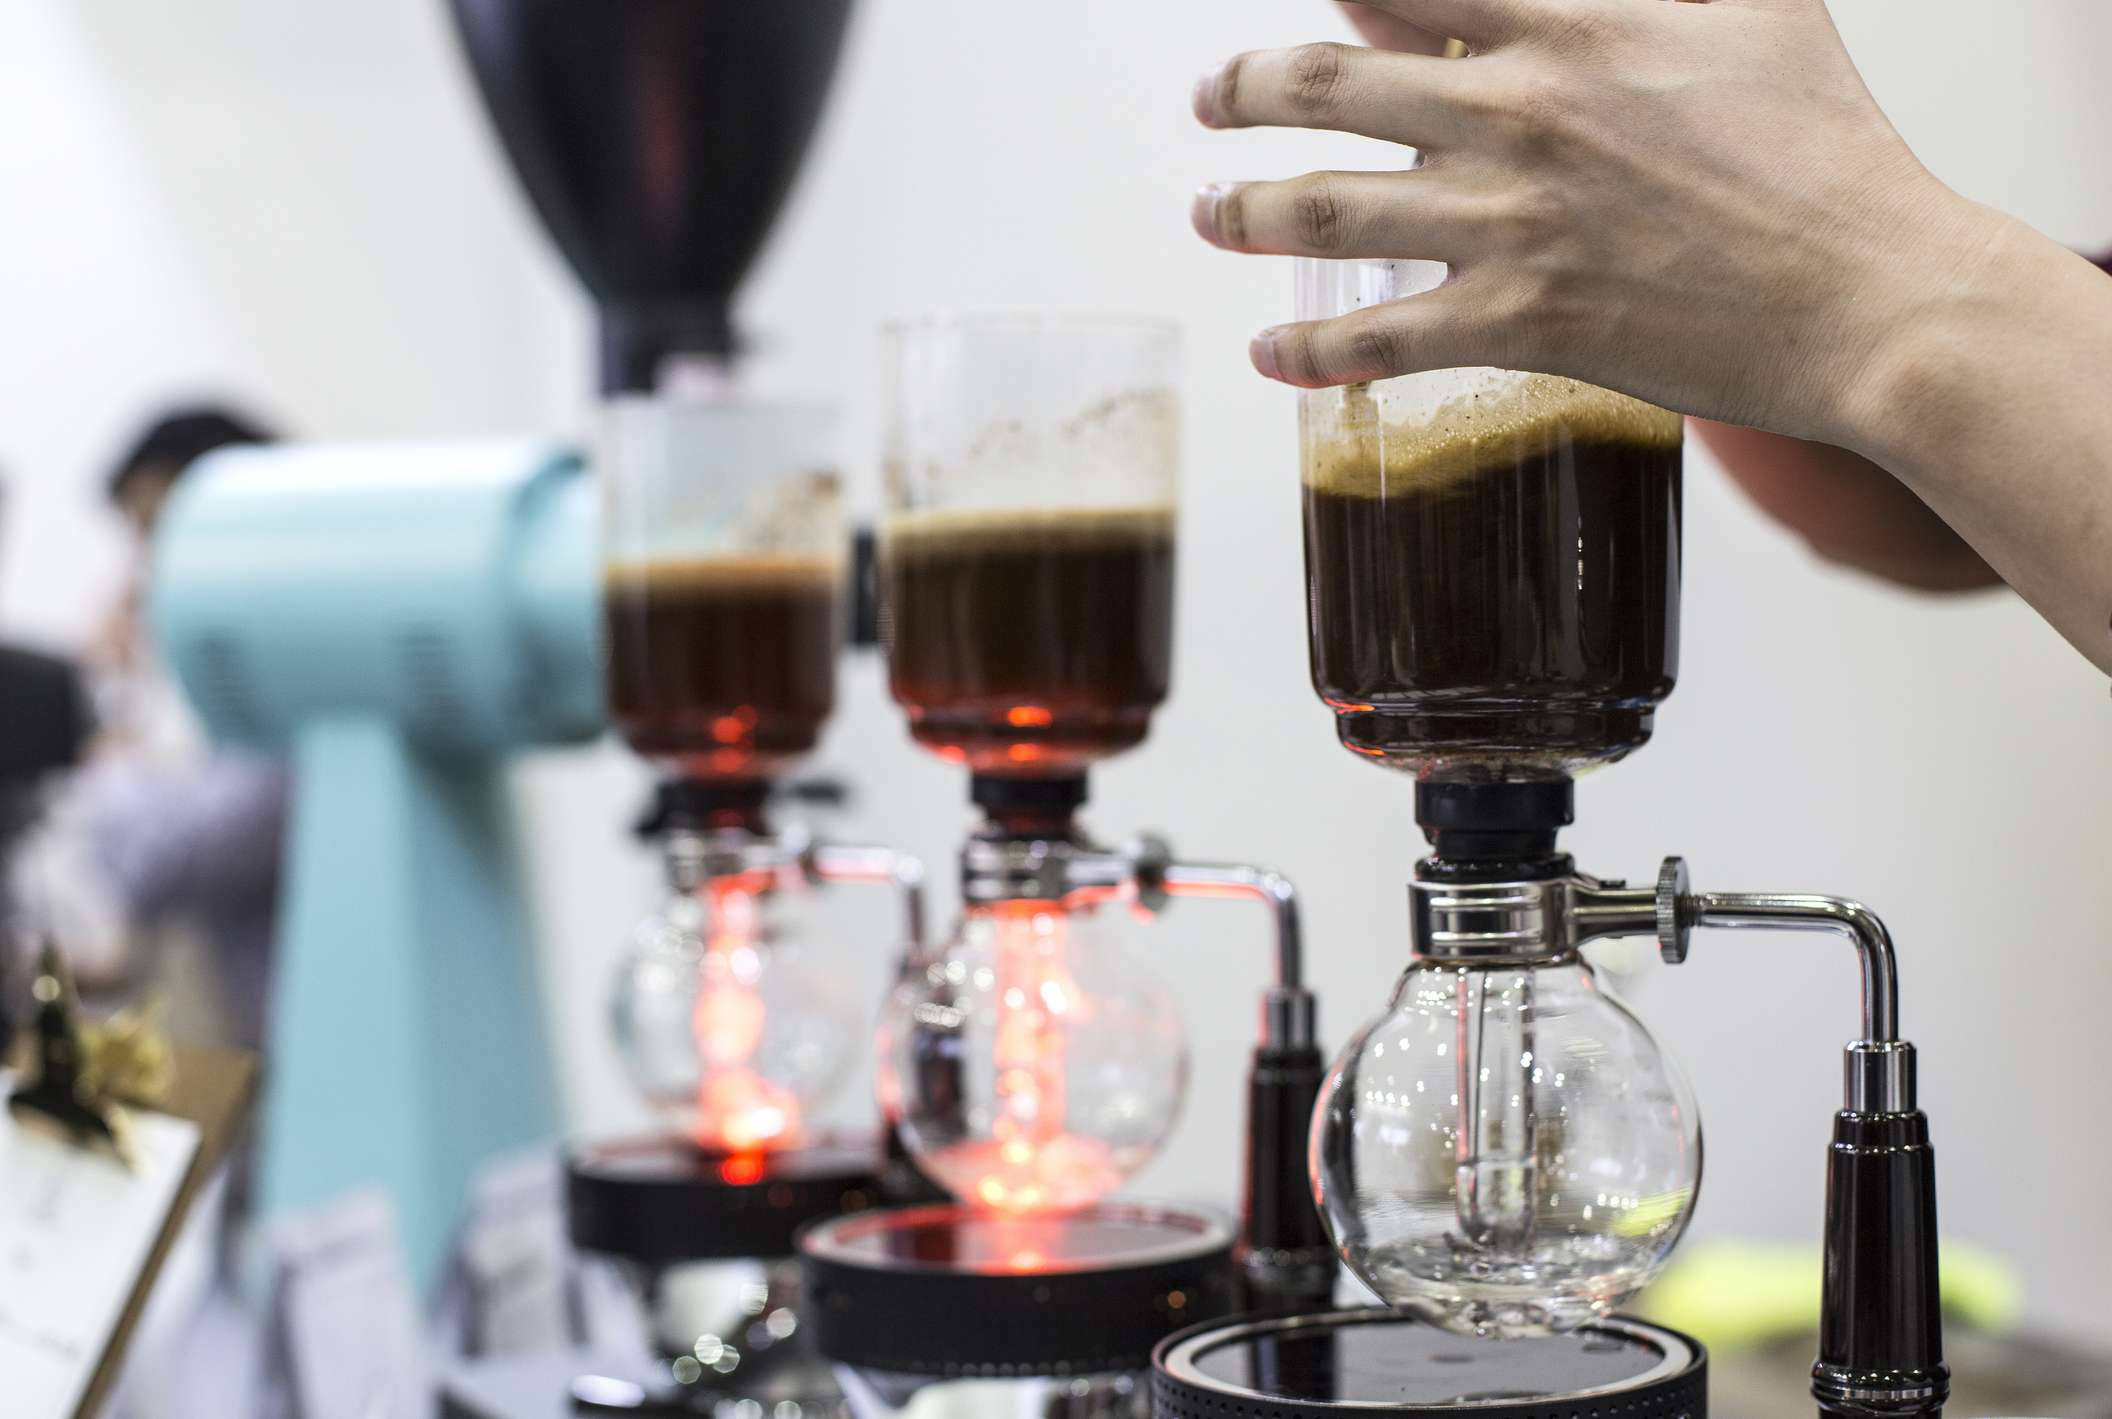 How to choose the right coffee?